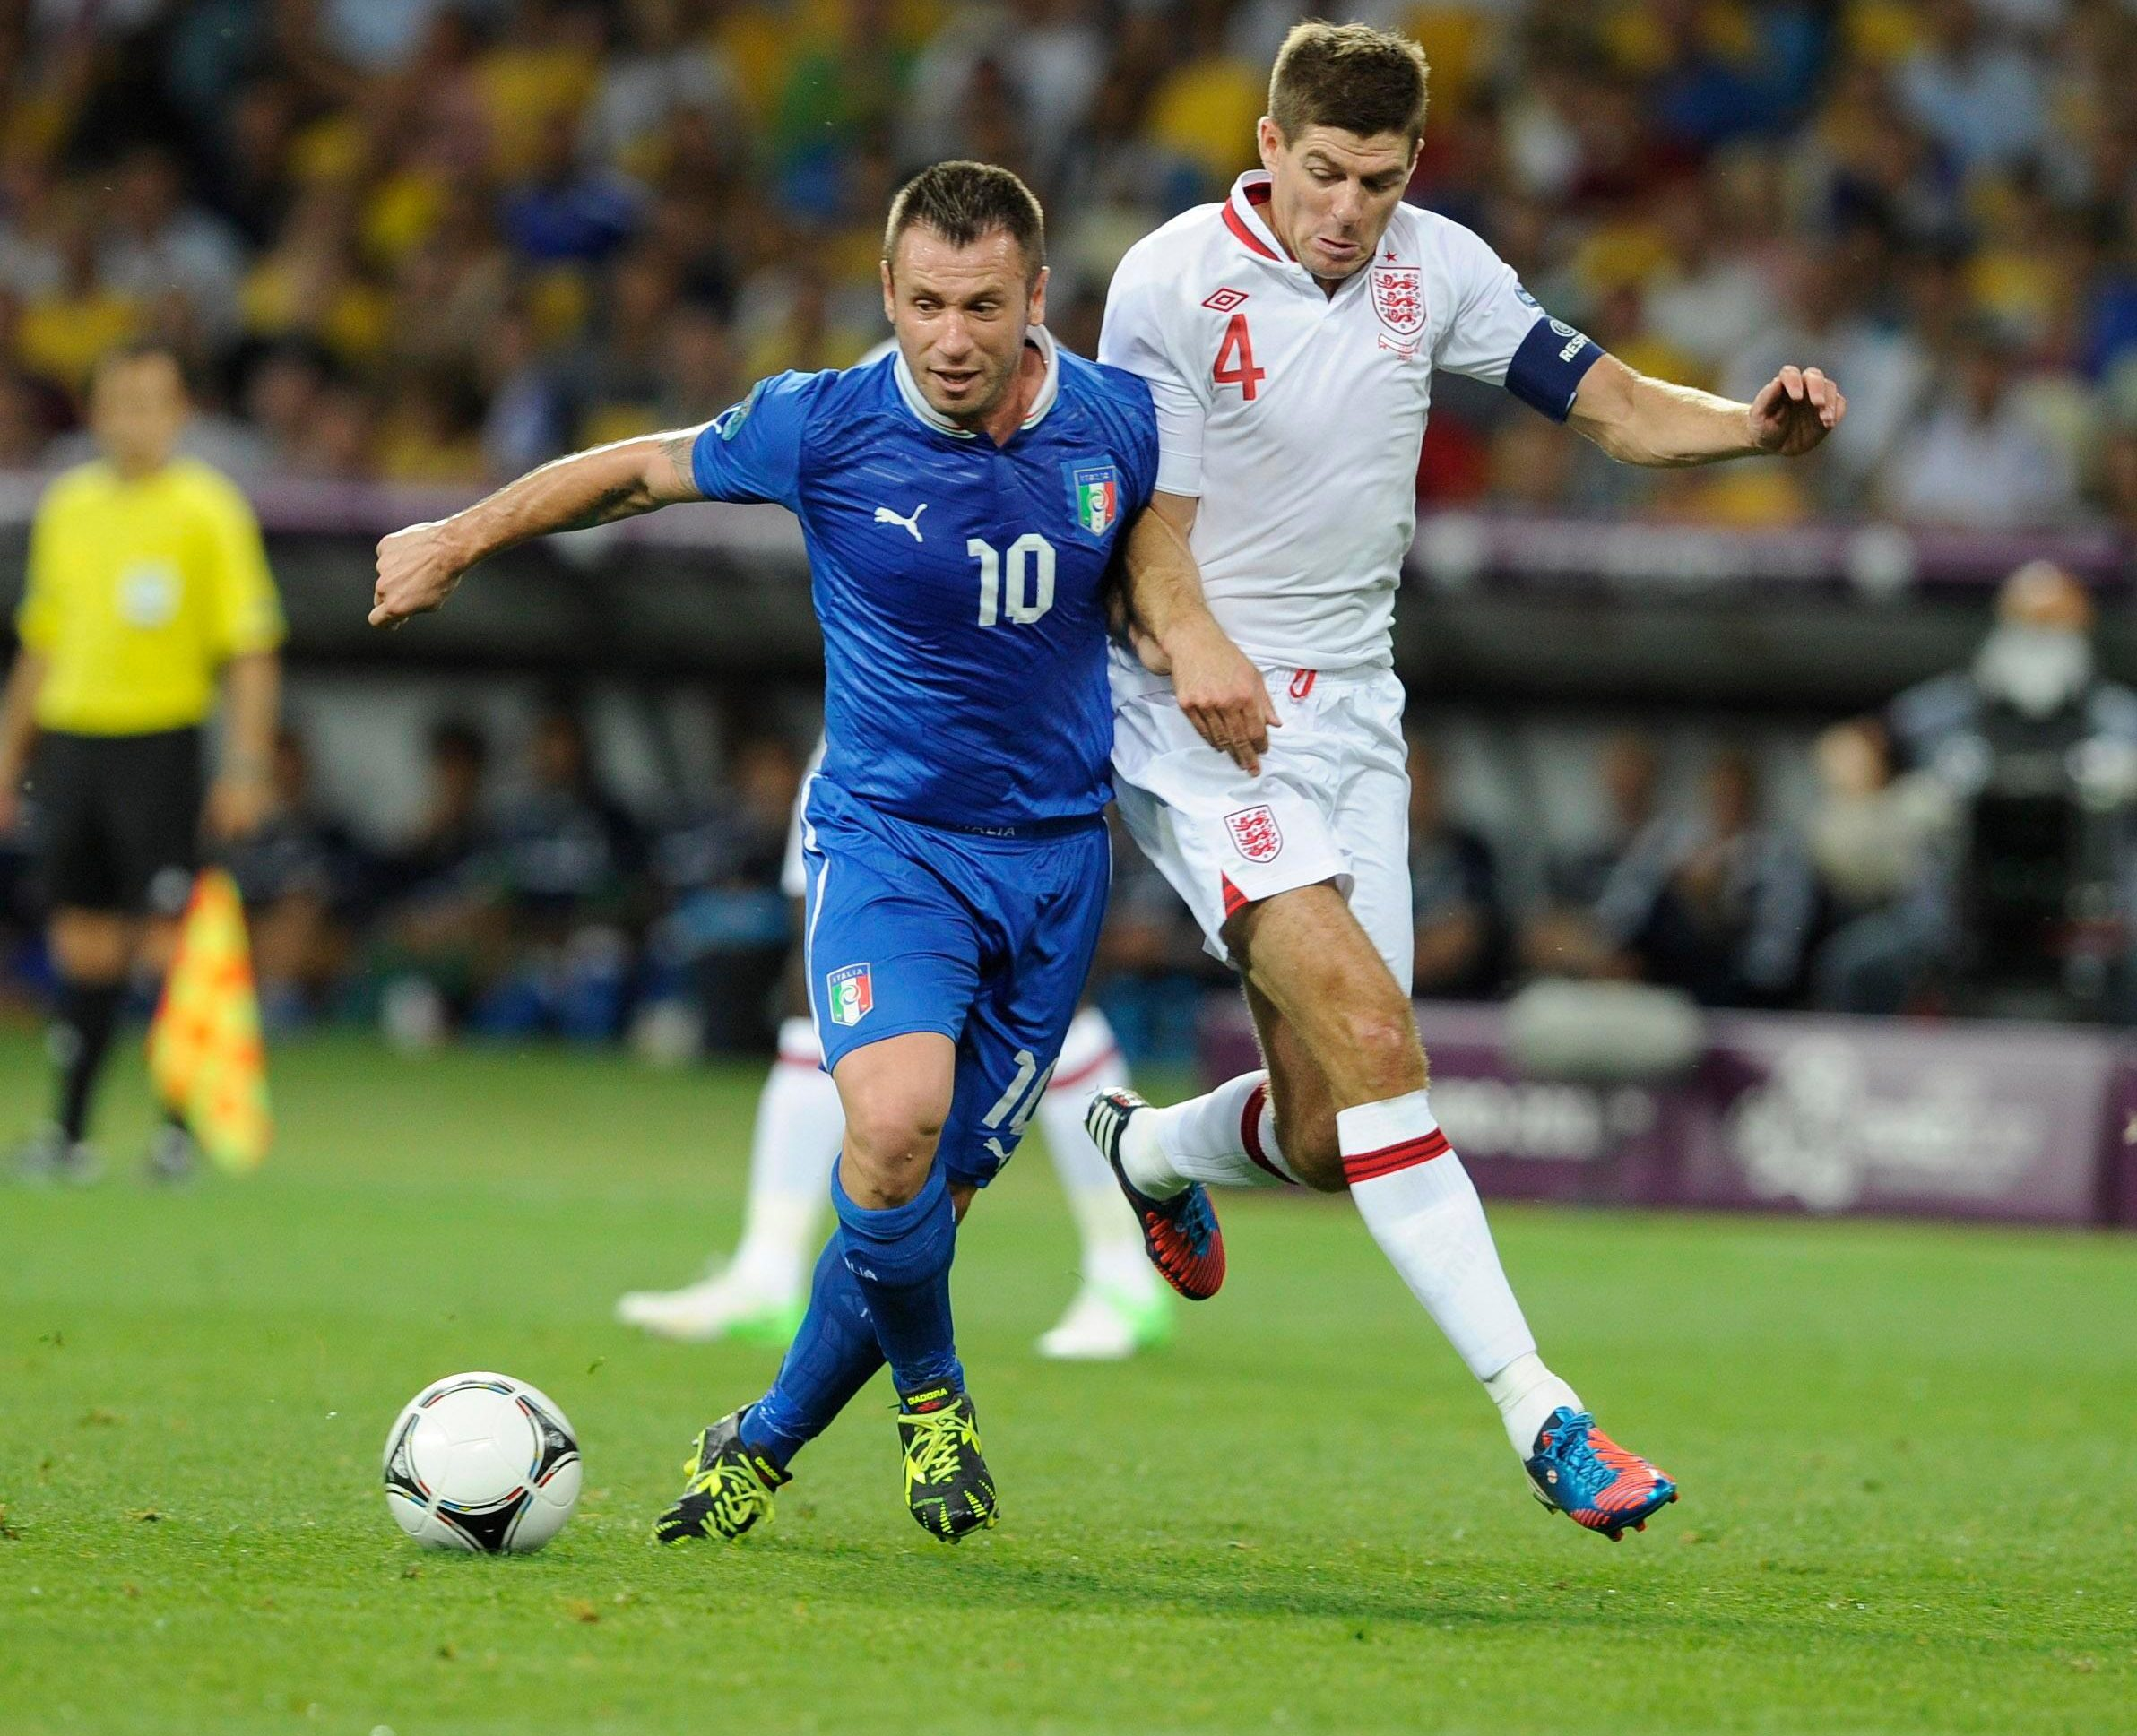 Antonio Cassano played 39 times for Italy